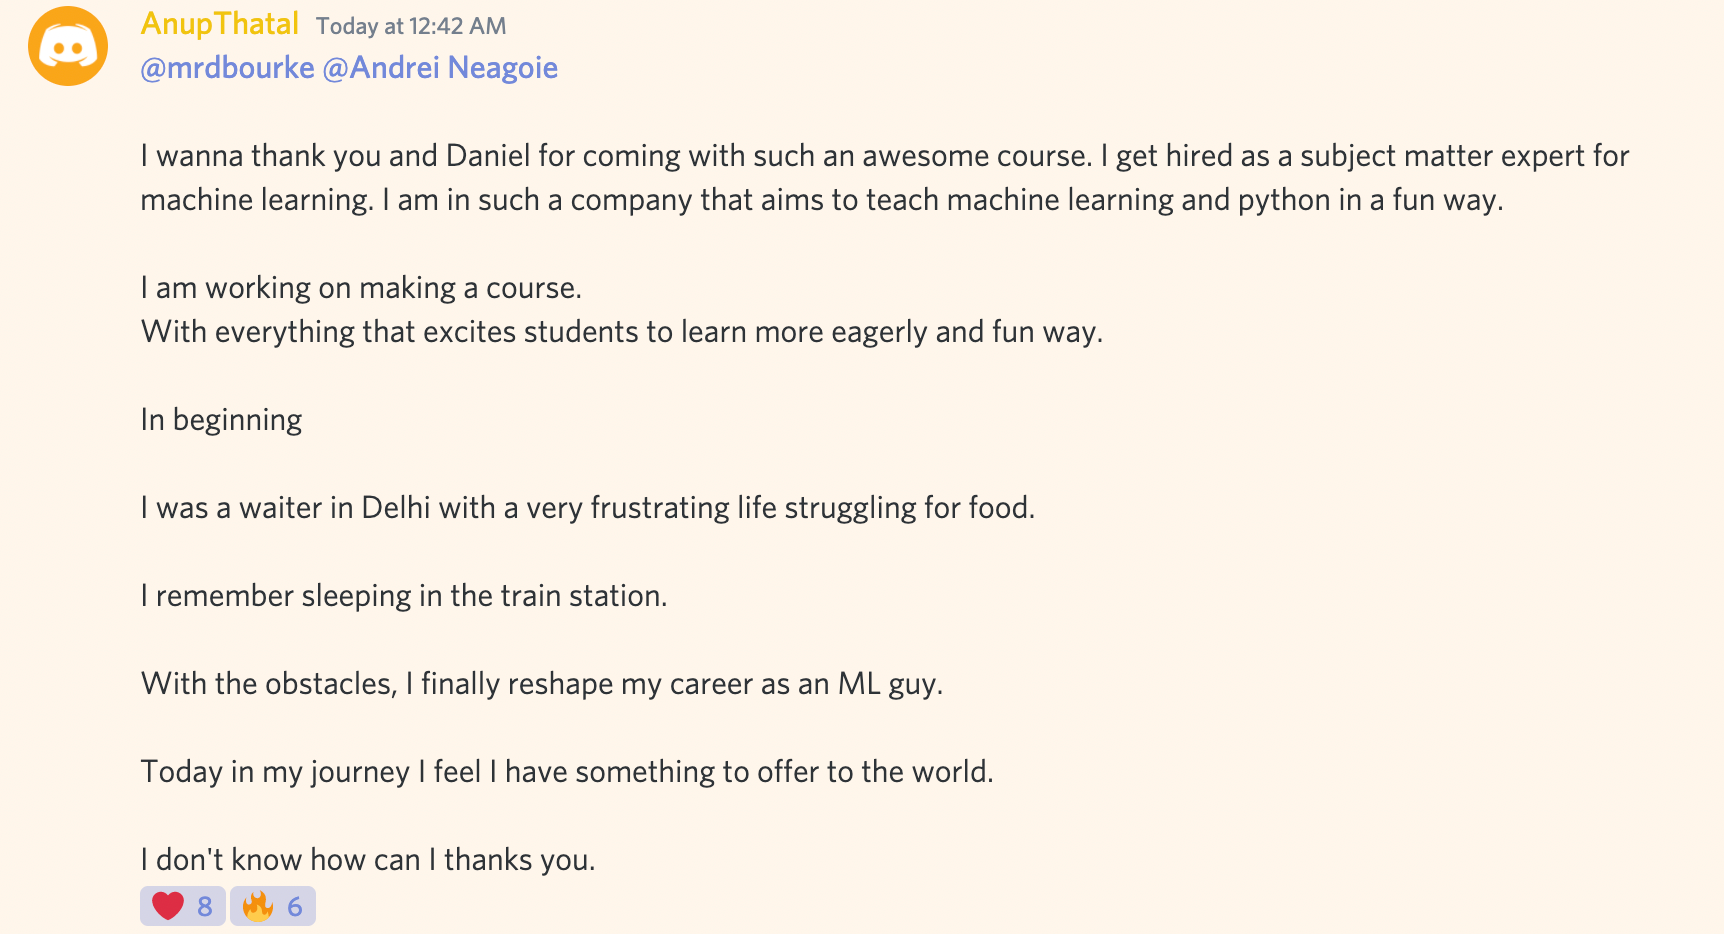 Anup's message on Discord detailing going from waiter to sleeping in a train station to working for a machine learning company.